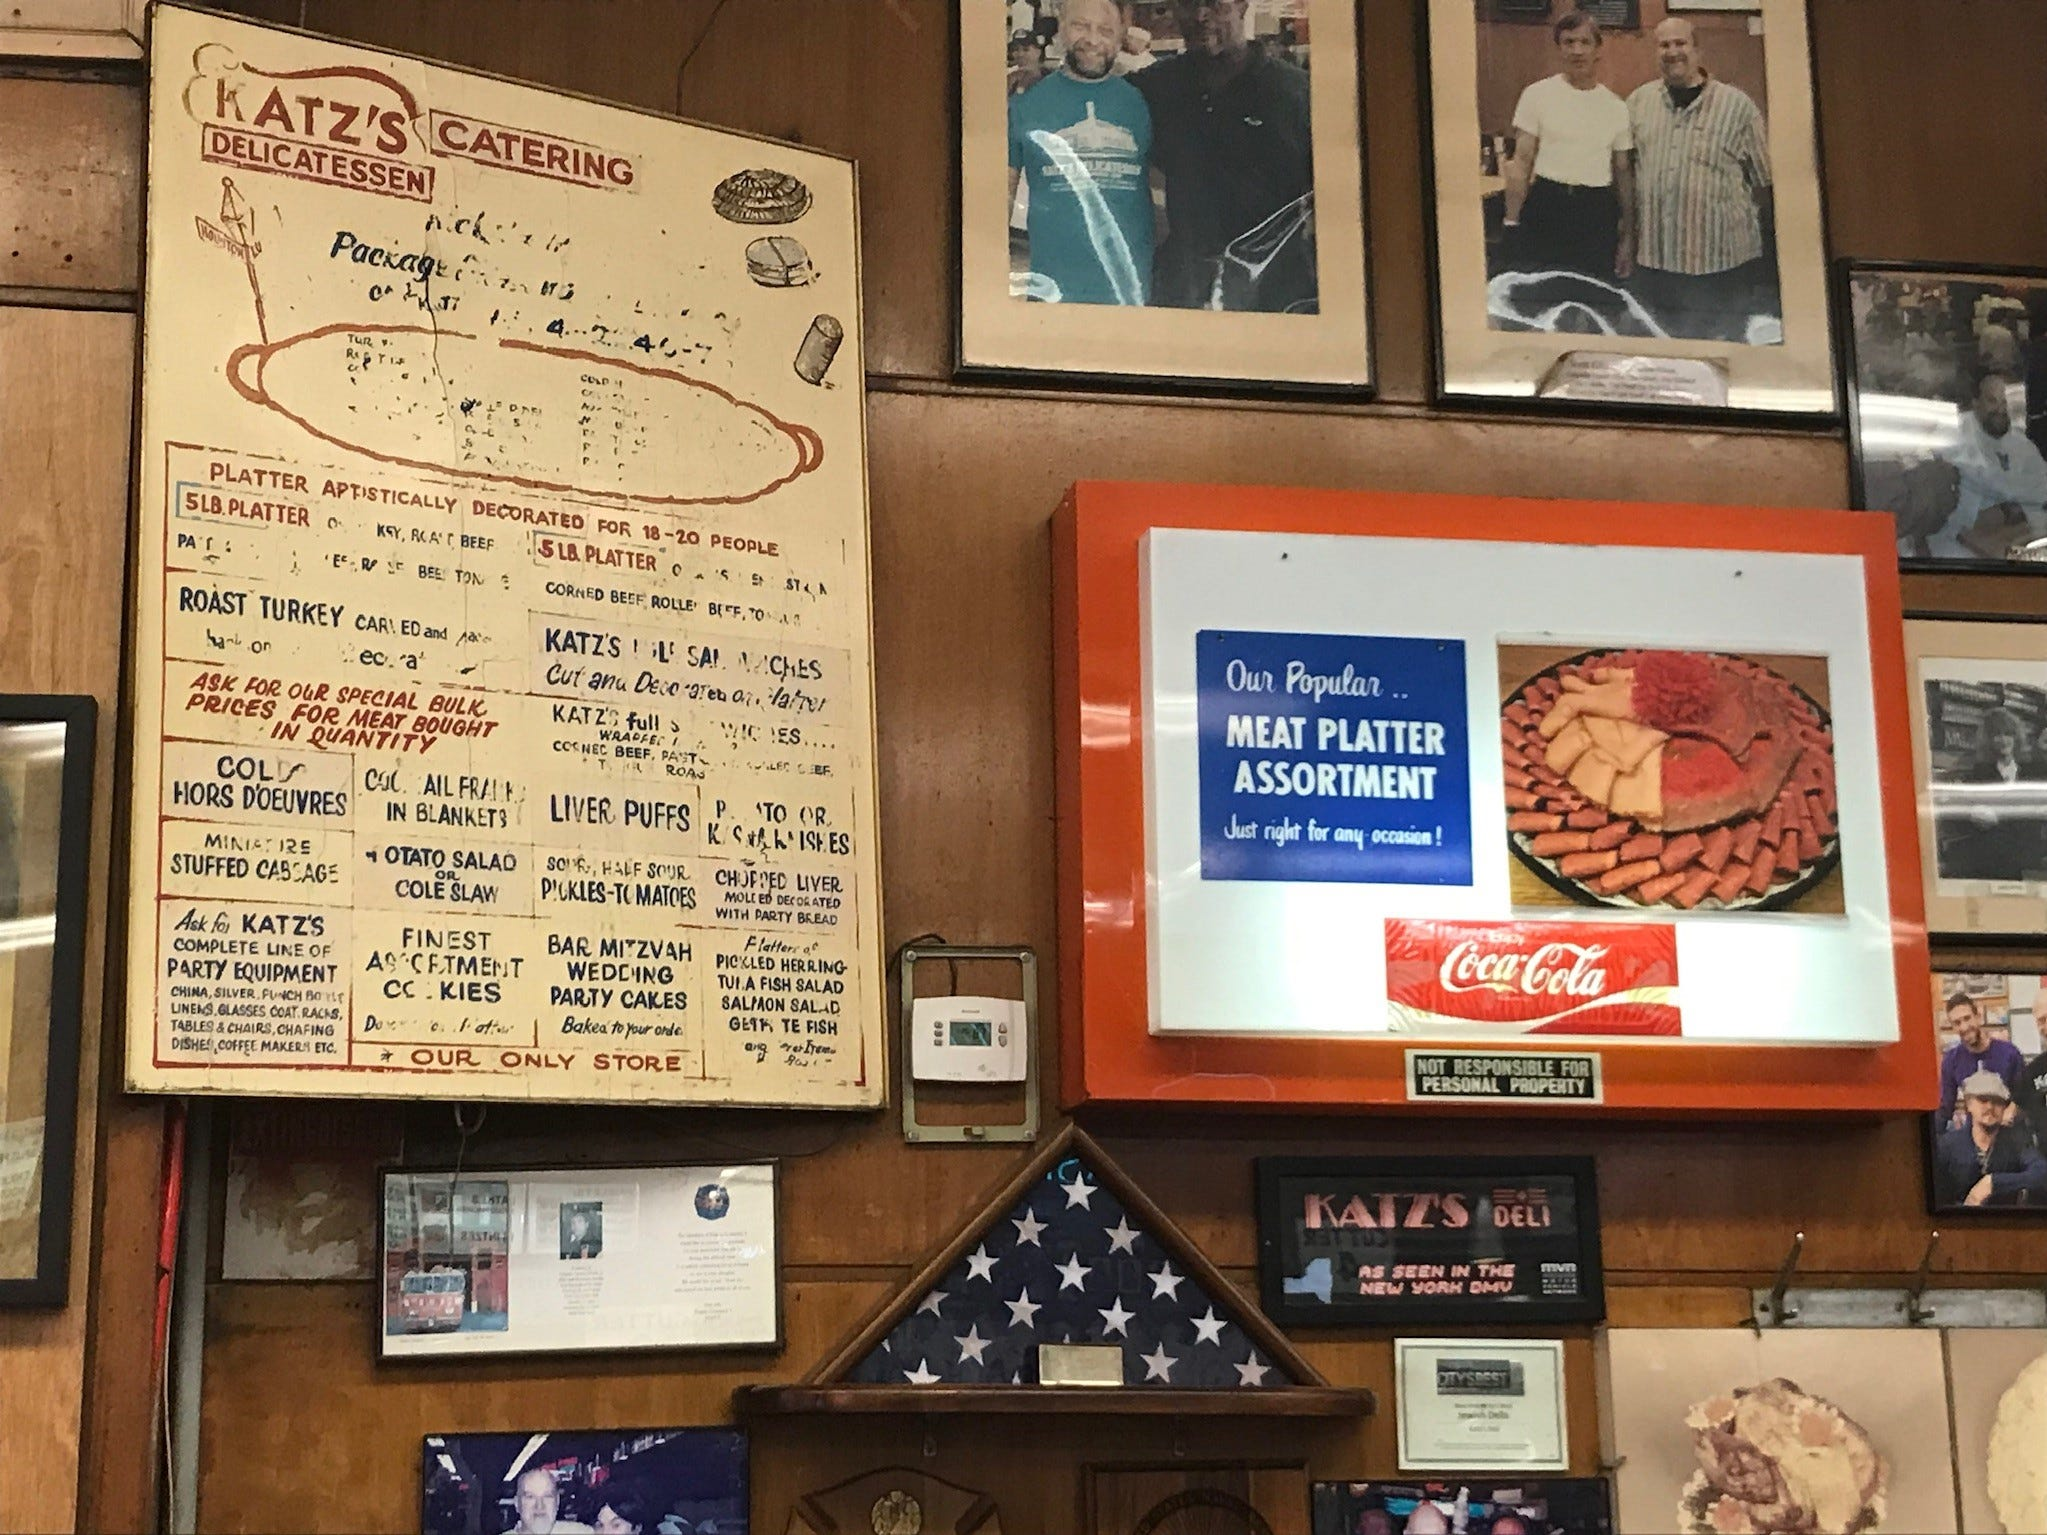 Katz's is big, but just about every inch of wall space is covered with photos, mementos or signs, some of which have been up for so long as to be unreadable.